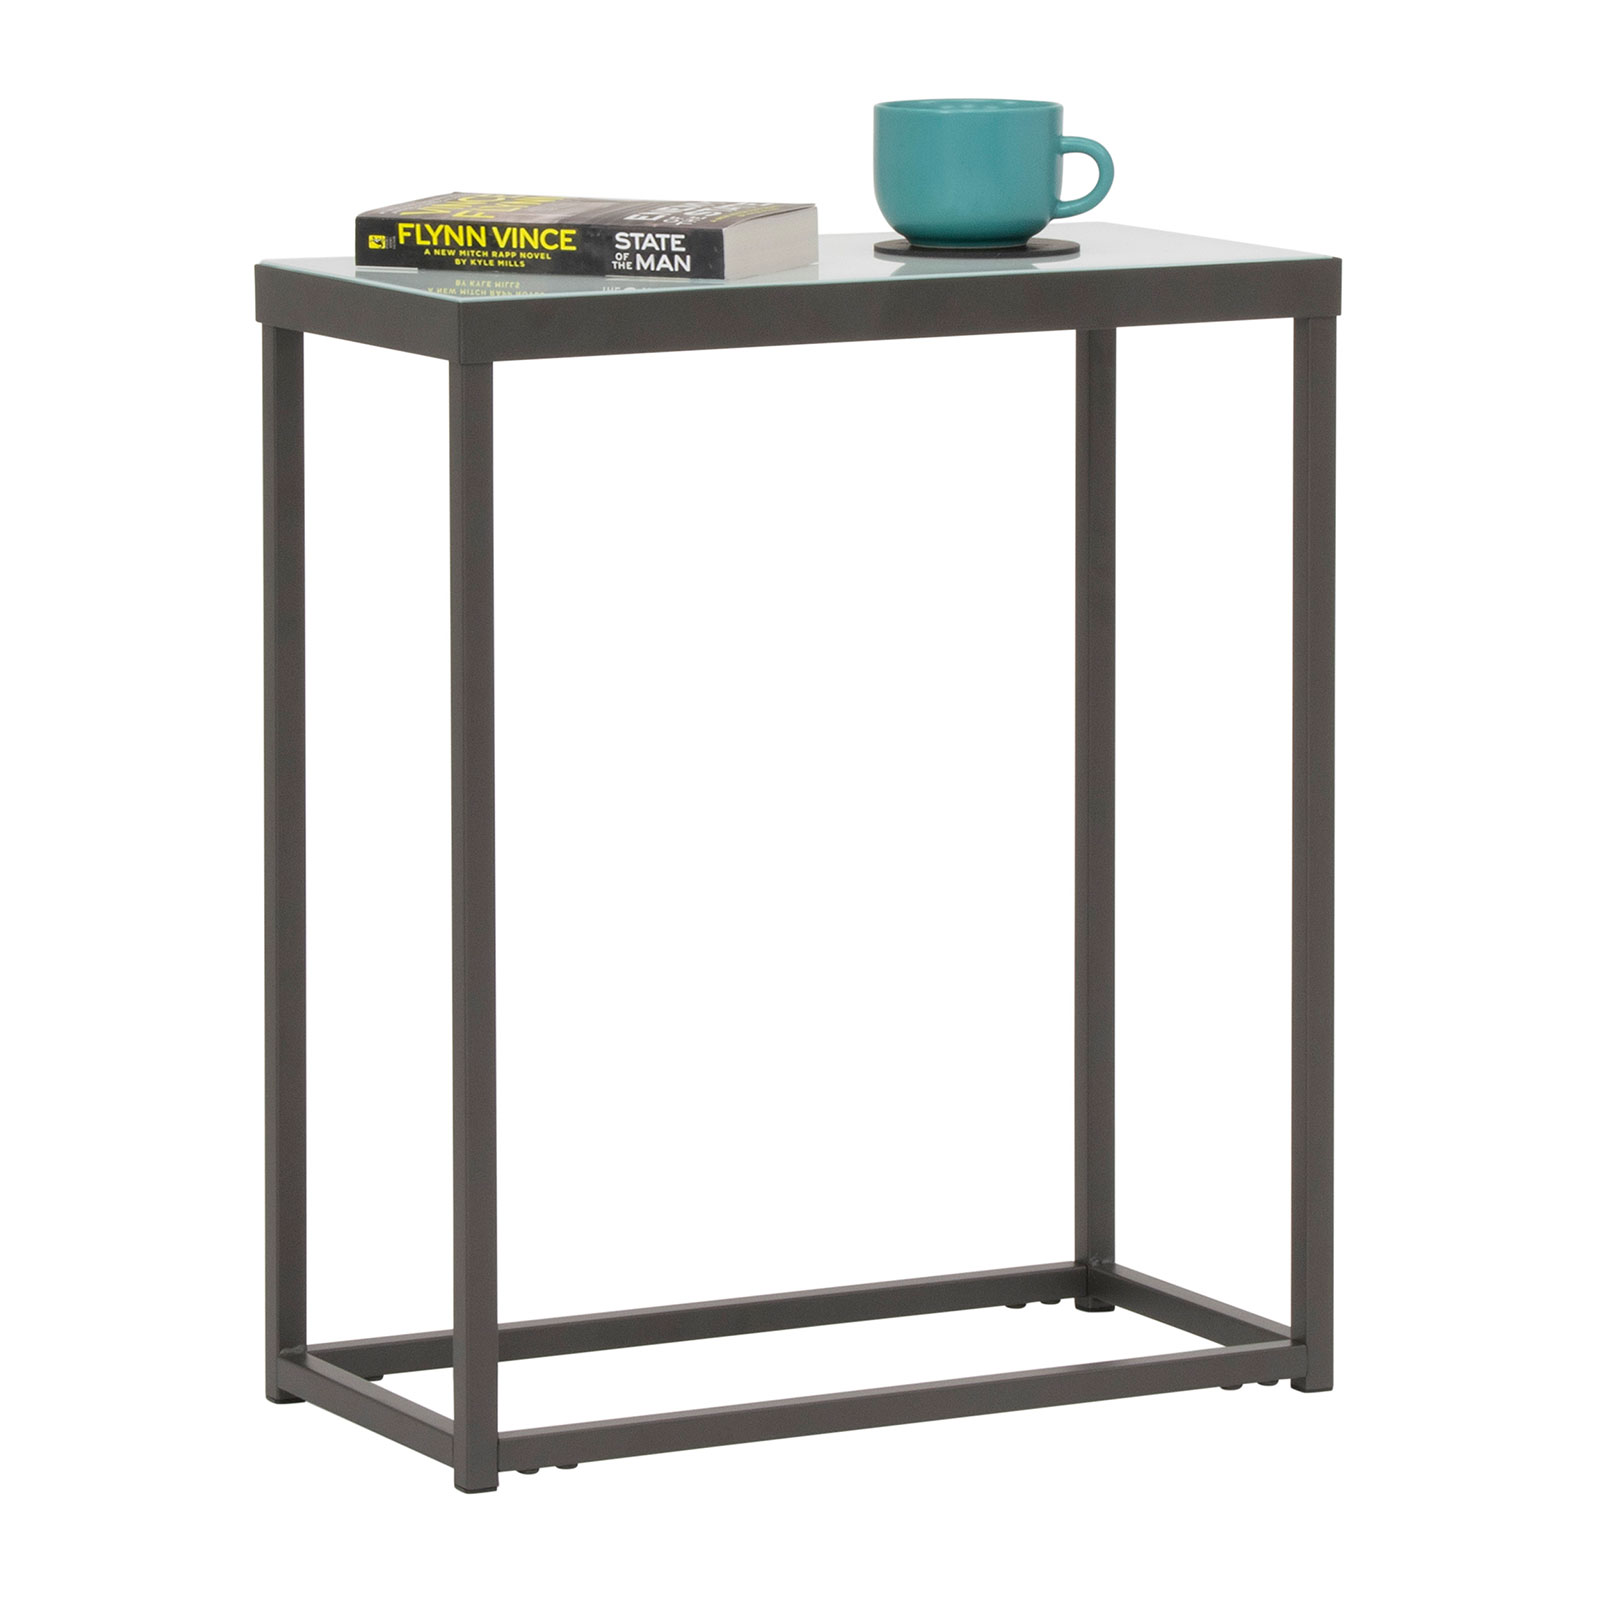 71053-Camber-Side-Table-props1a